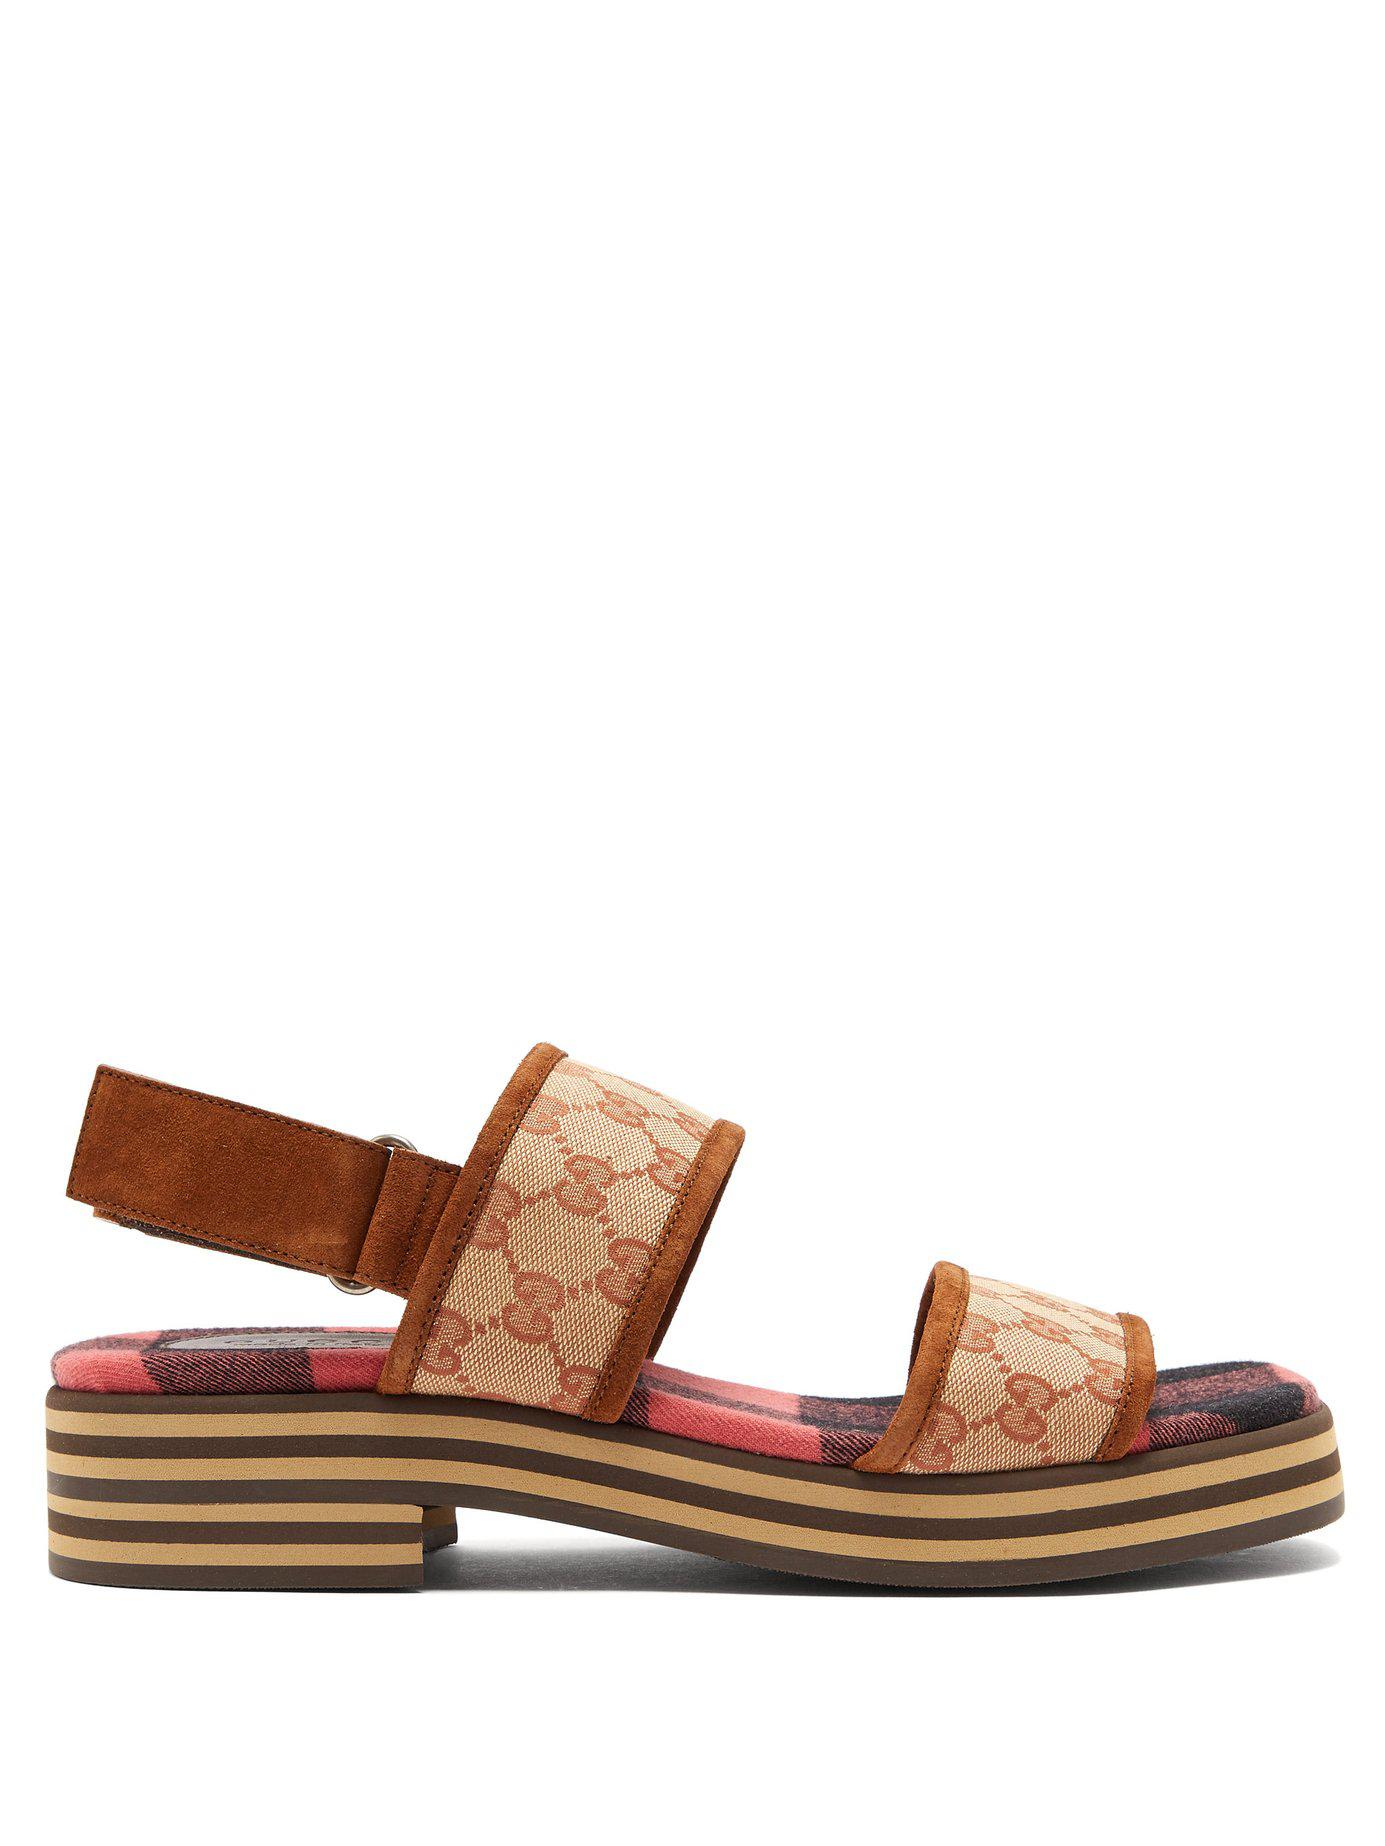 b343e87bc33fec Lyst - Gucci Gg Supreme Stacked Sole Suede Sandals in Brown for Men